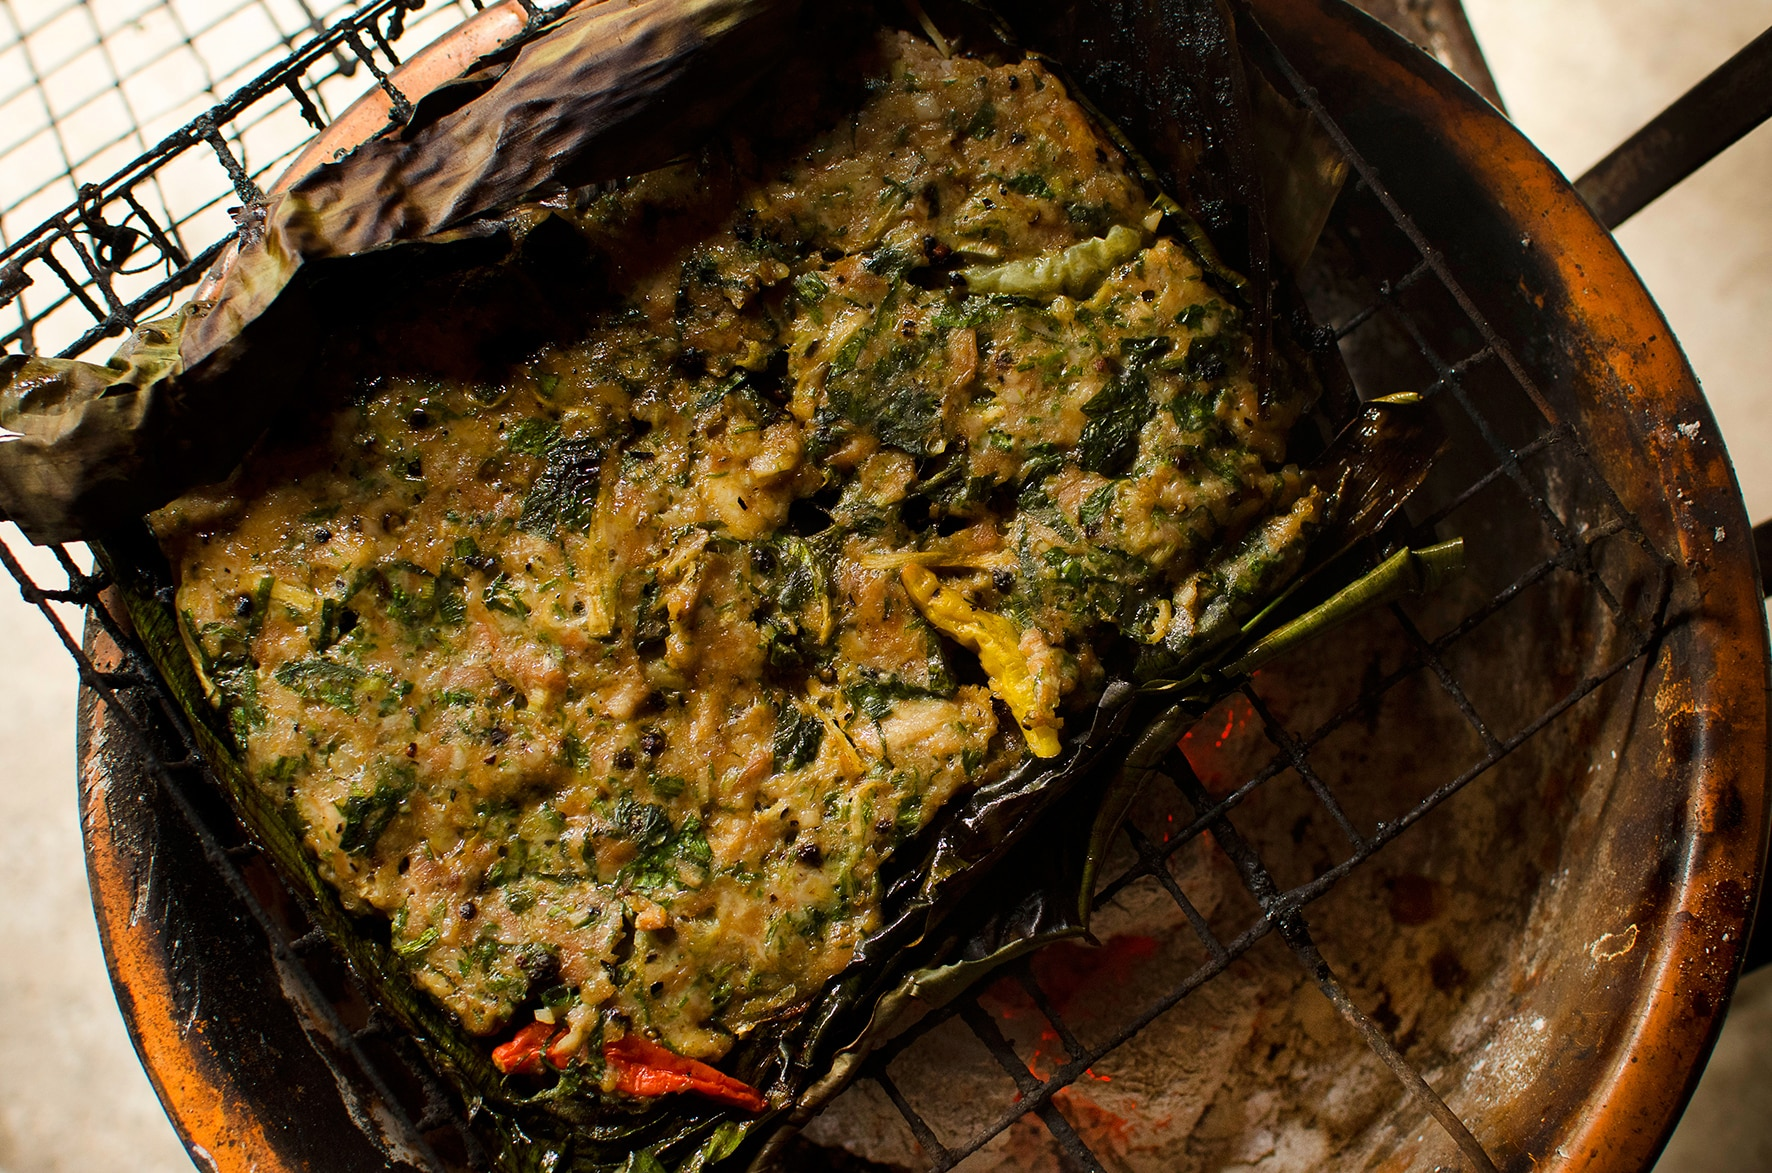 Chargrilled banana leaf filled with chicken and Asian herbs recipe  SBS Food